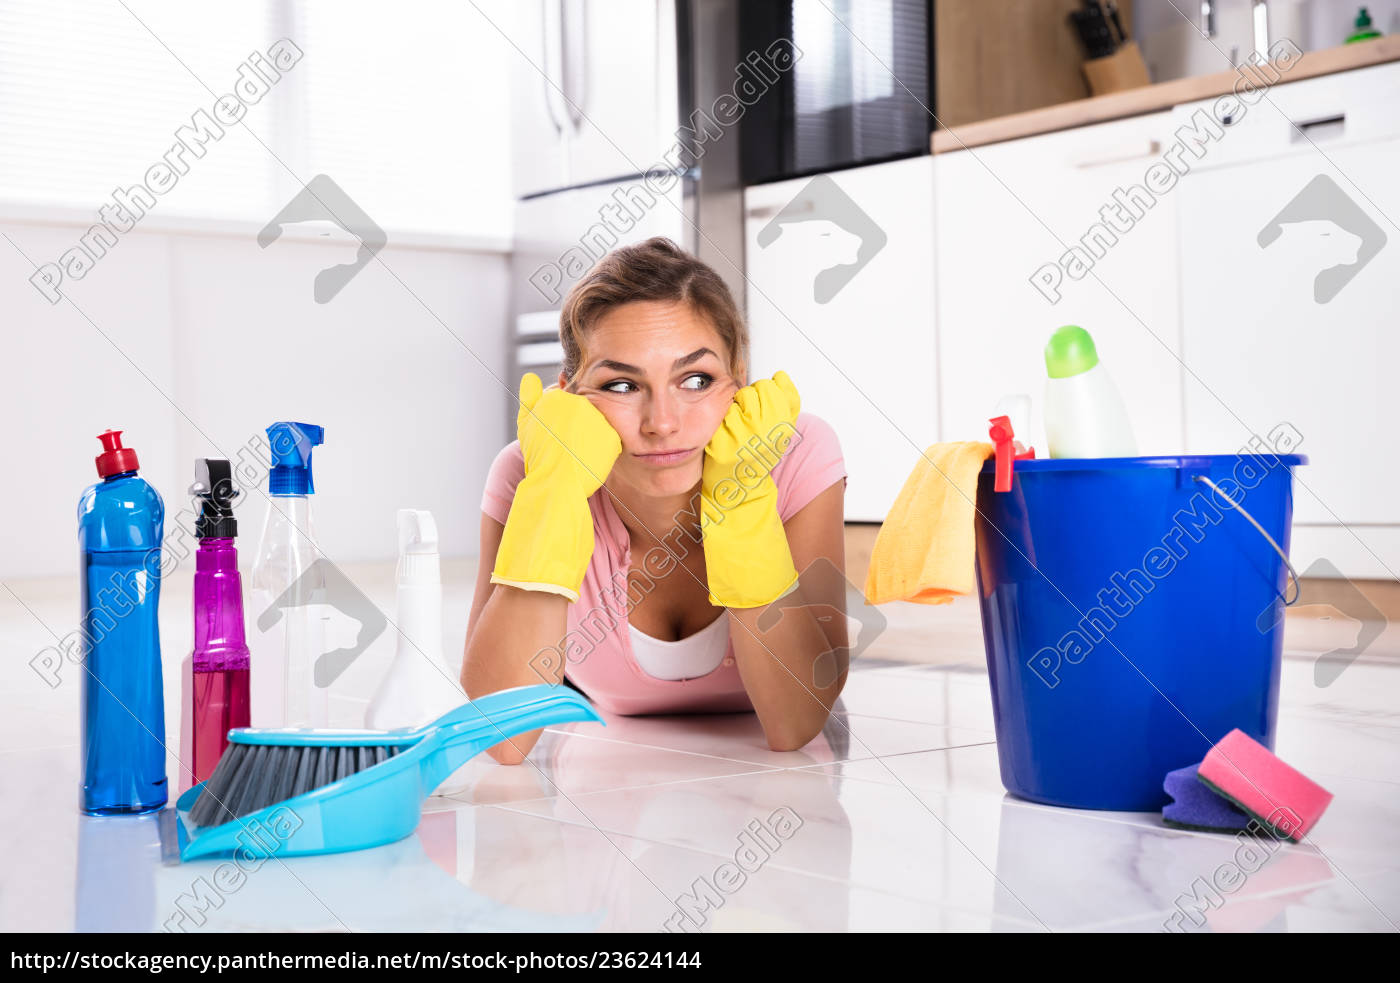 woman, lying, on, kitchen, floor, and - 23624144